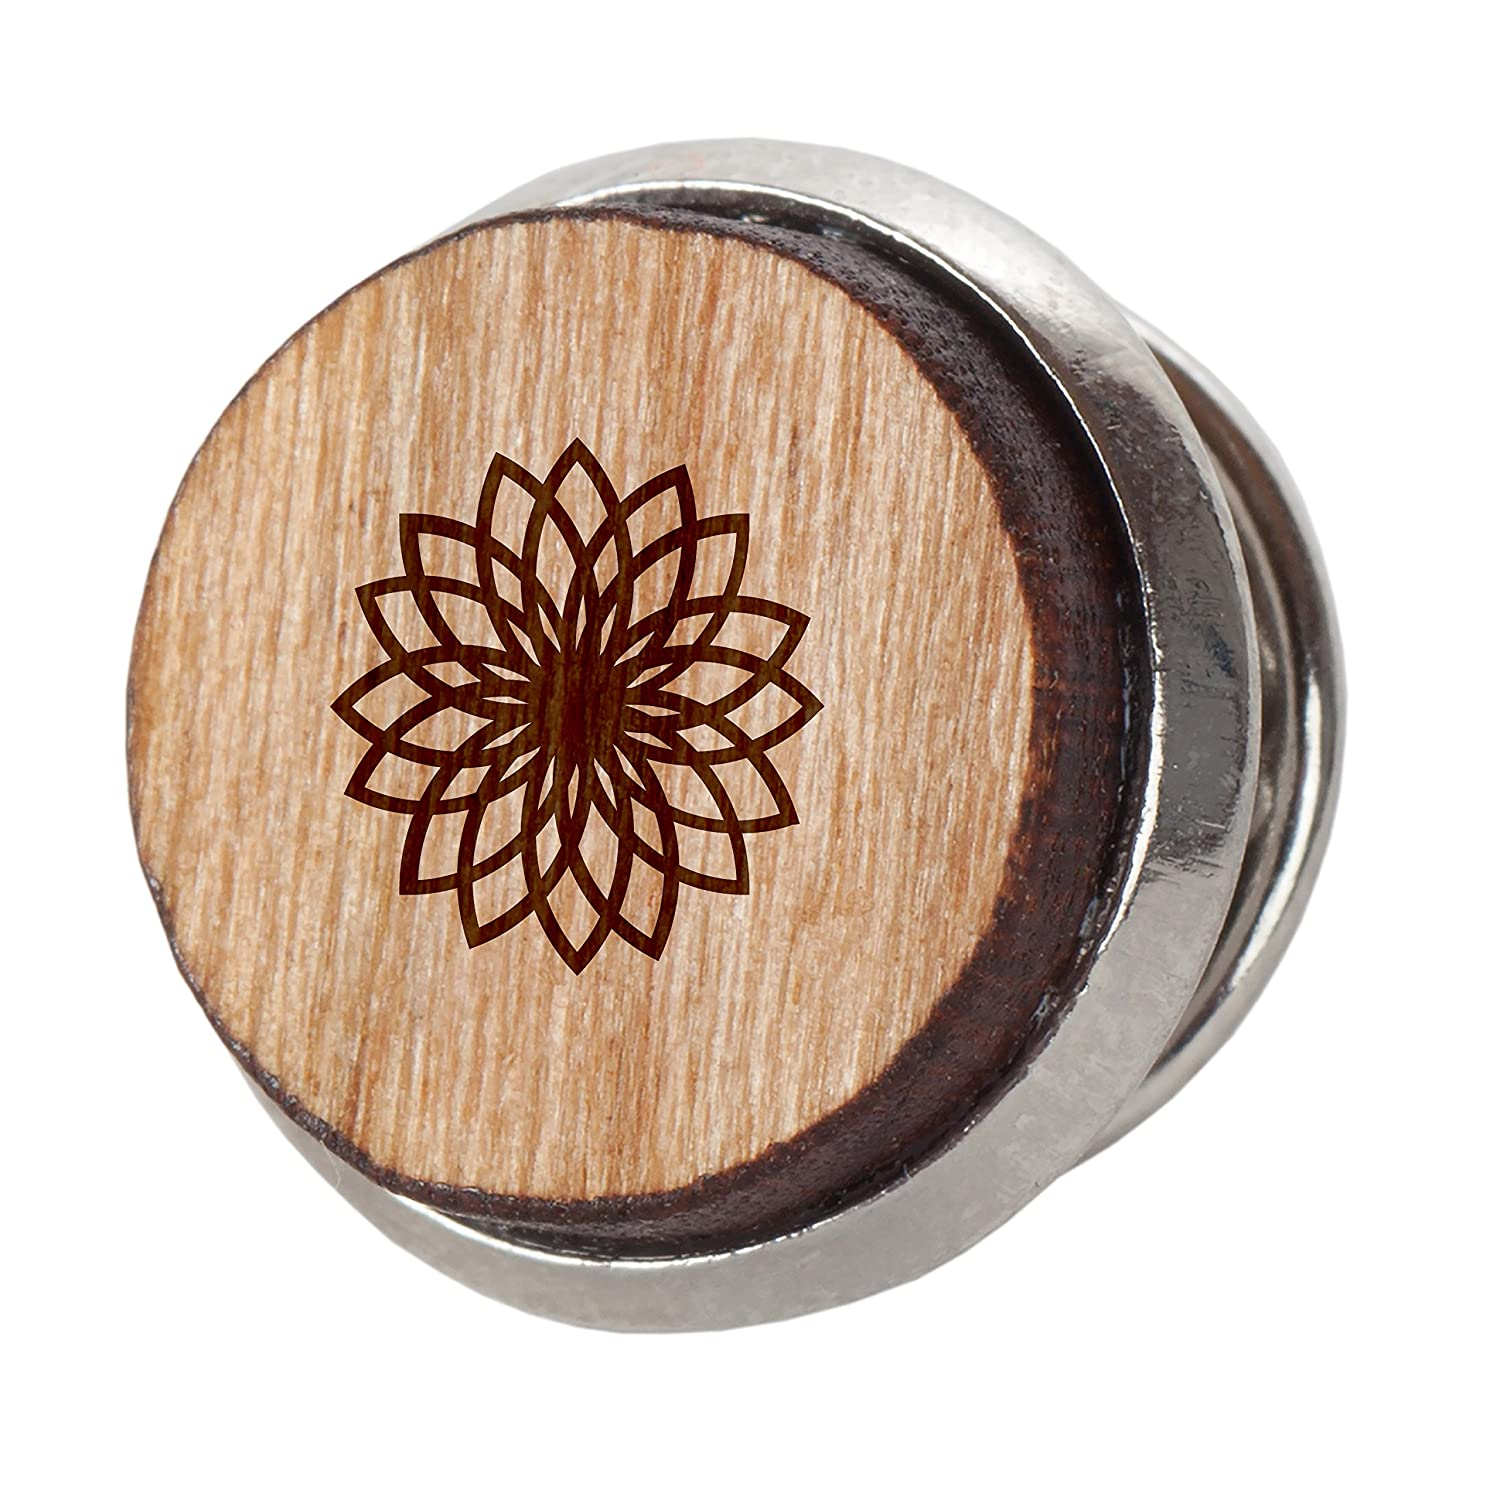 12Mm Simple Tie Clip with Laser Engraved Design Geometric Flower Stylish Cherry Wood Tie Tack Engraved Tie Tack Gift